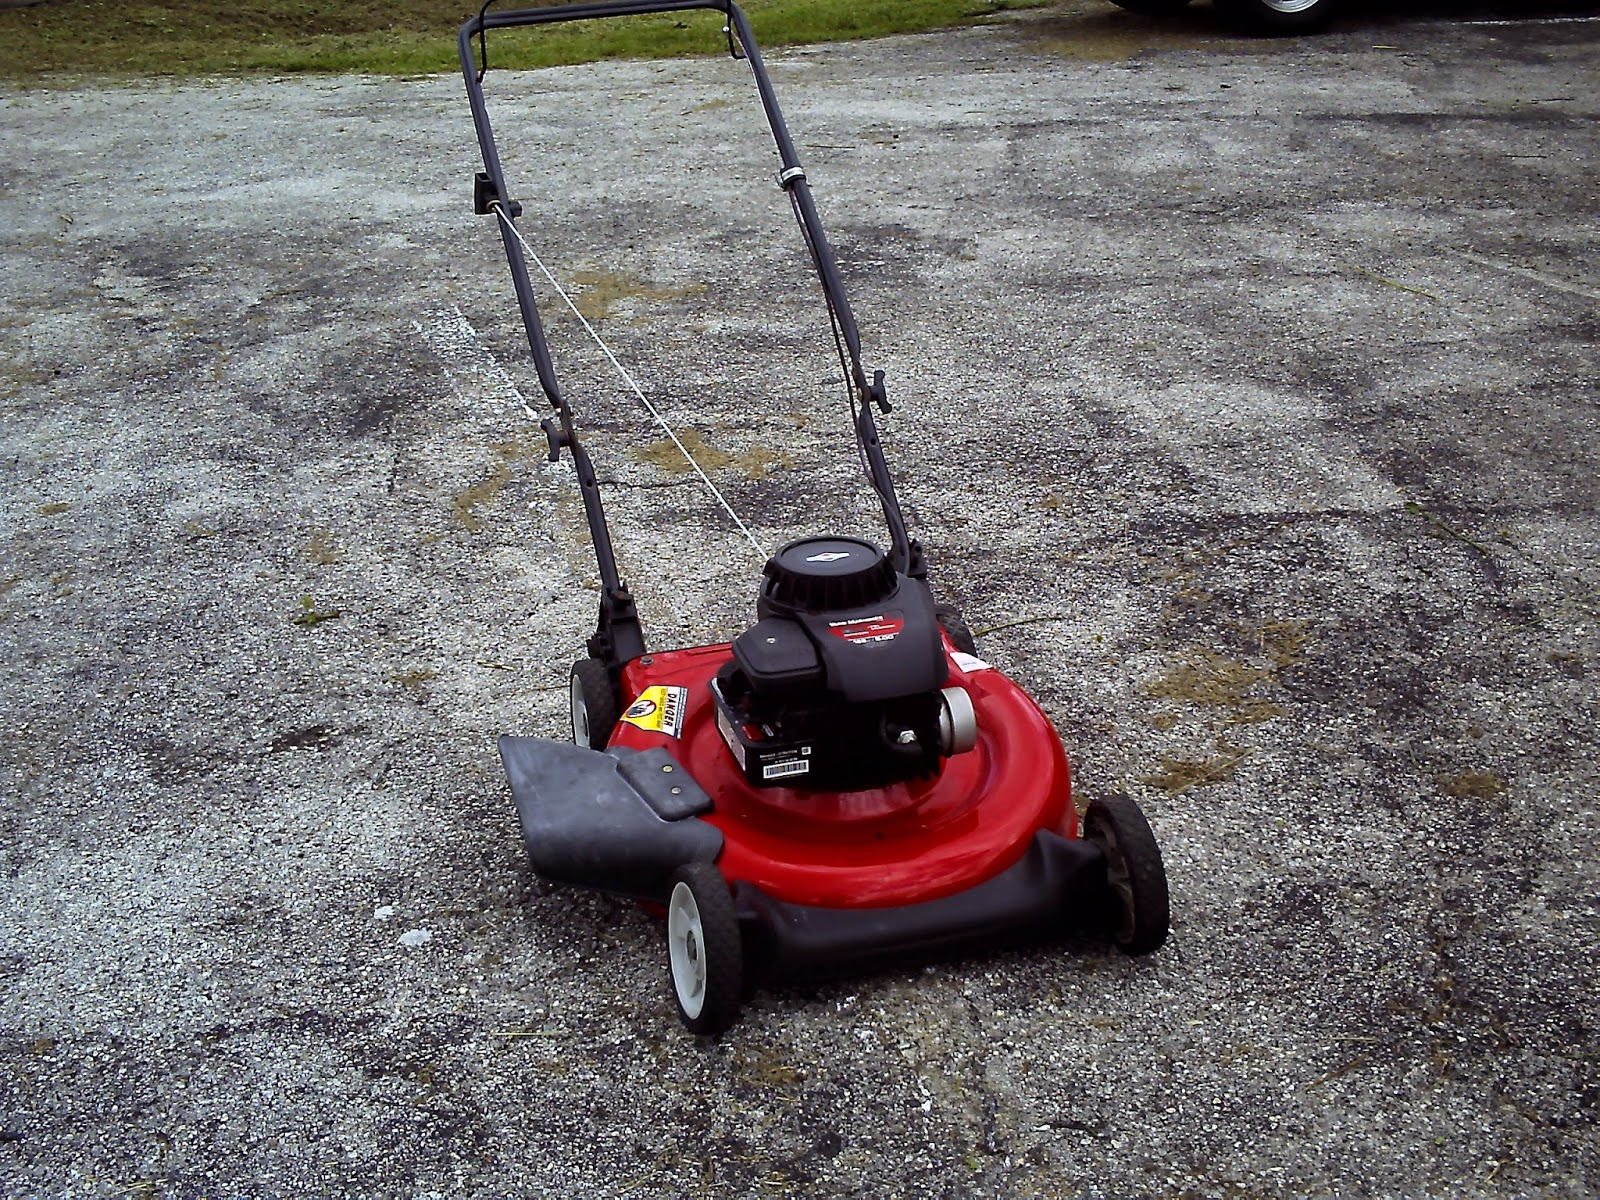 """MTD 21"""" PUSH MOWER .... REBUILT AND RESORED TO IT'S FORMER GLORY... HAS A  BRIGGS & STRATTON ENGINE WITH 5 HORSES TO BACK IT UP... EXCELLENT  RUNNING/WORKING ..."""